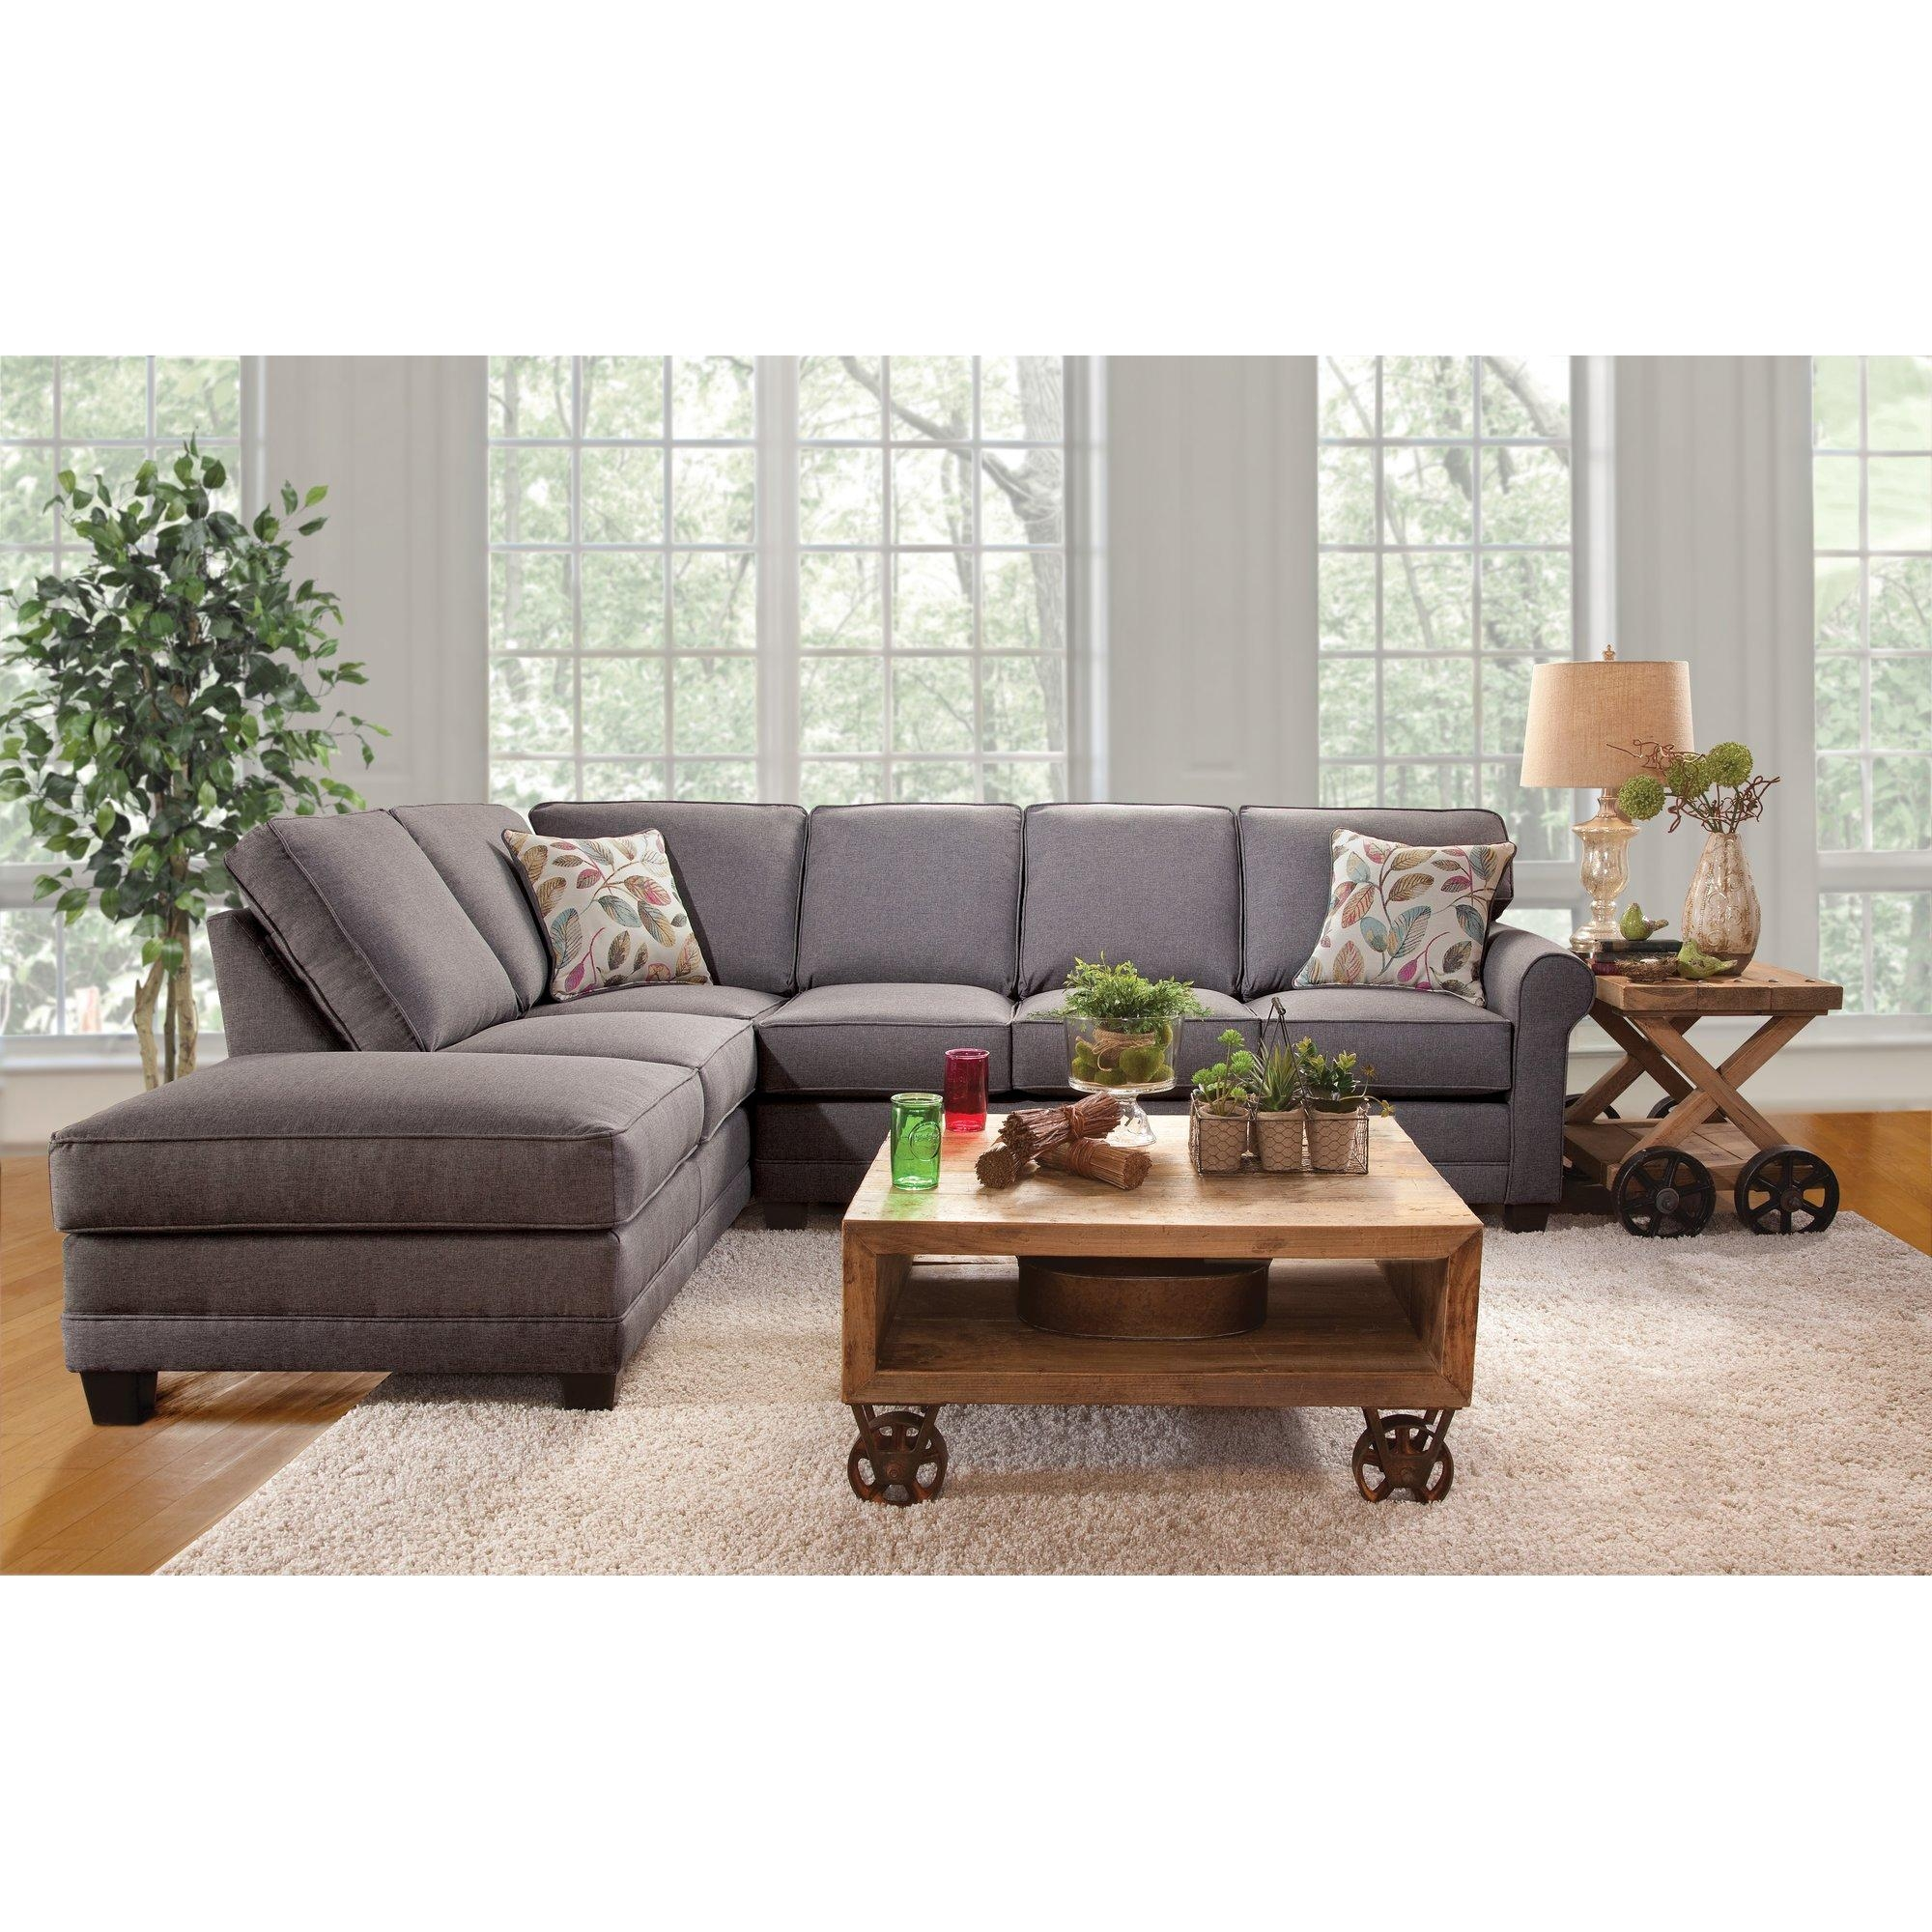 Serta Sectional Sofa Reviews | Tehranmix Decoration Throughout Serta Sectional (Image 15 of 20)